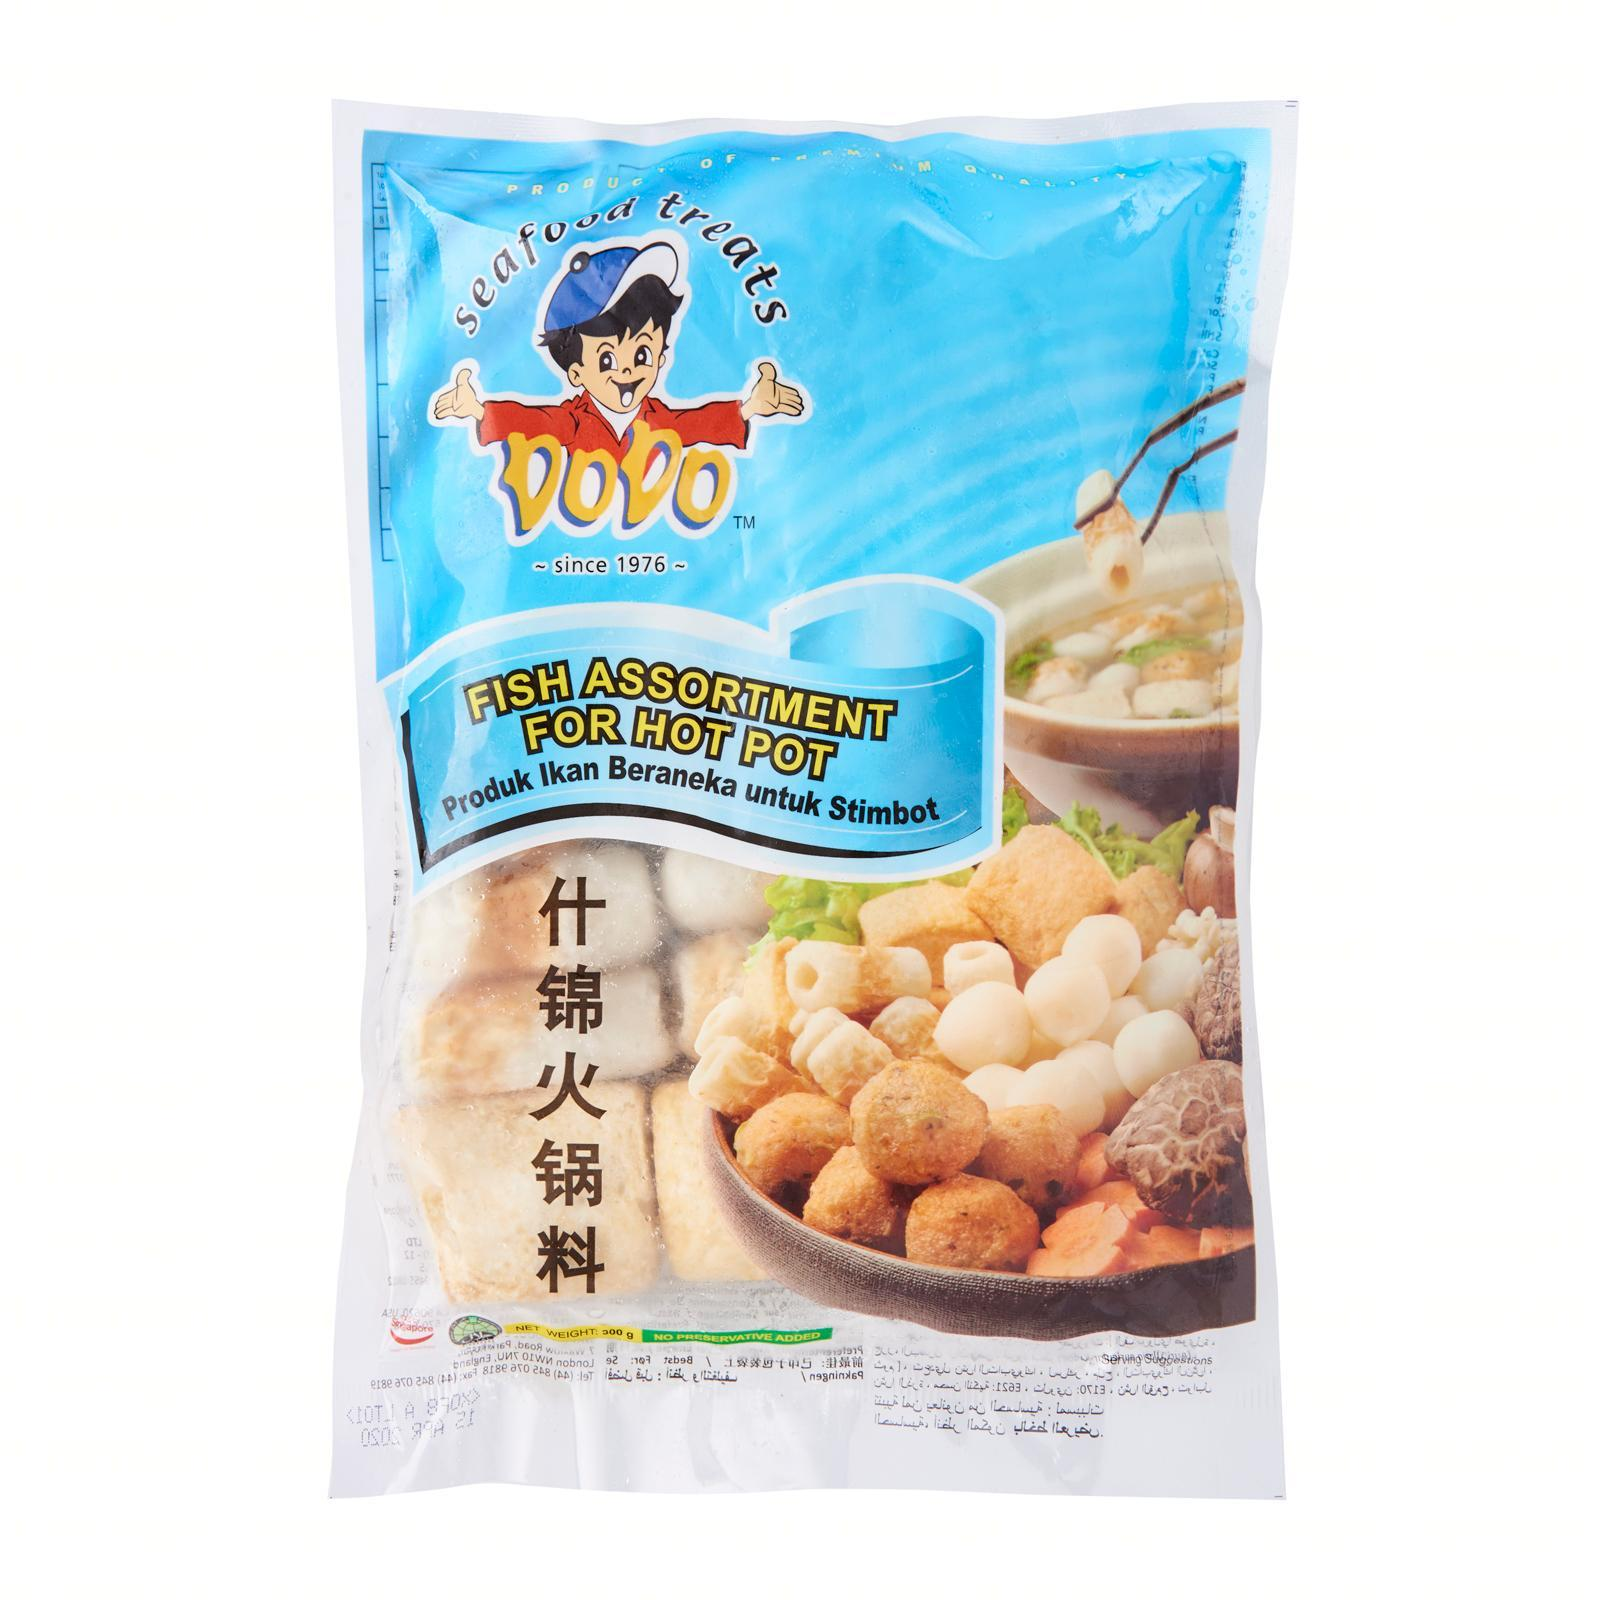 Dodo Fish Assortment For Hot Pot - Frozen By Redmart.